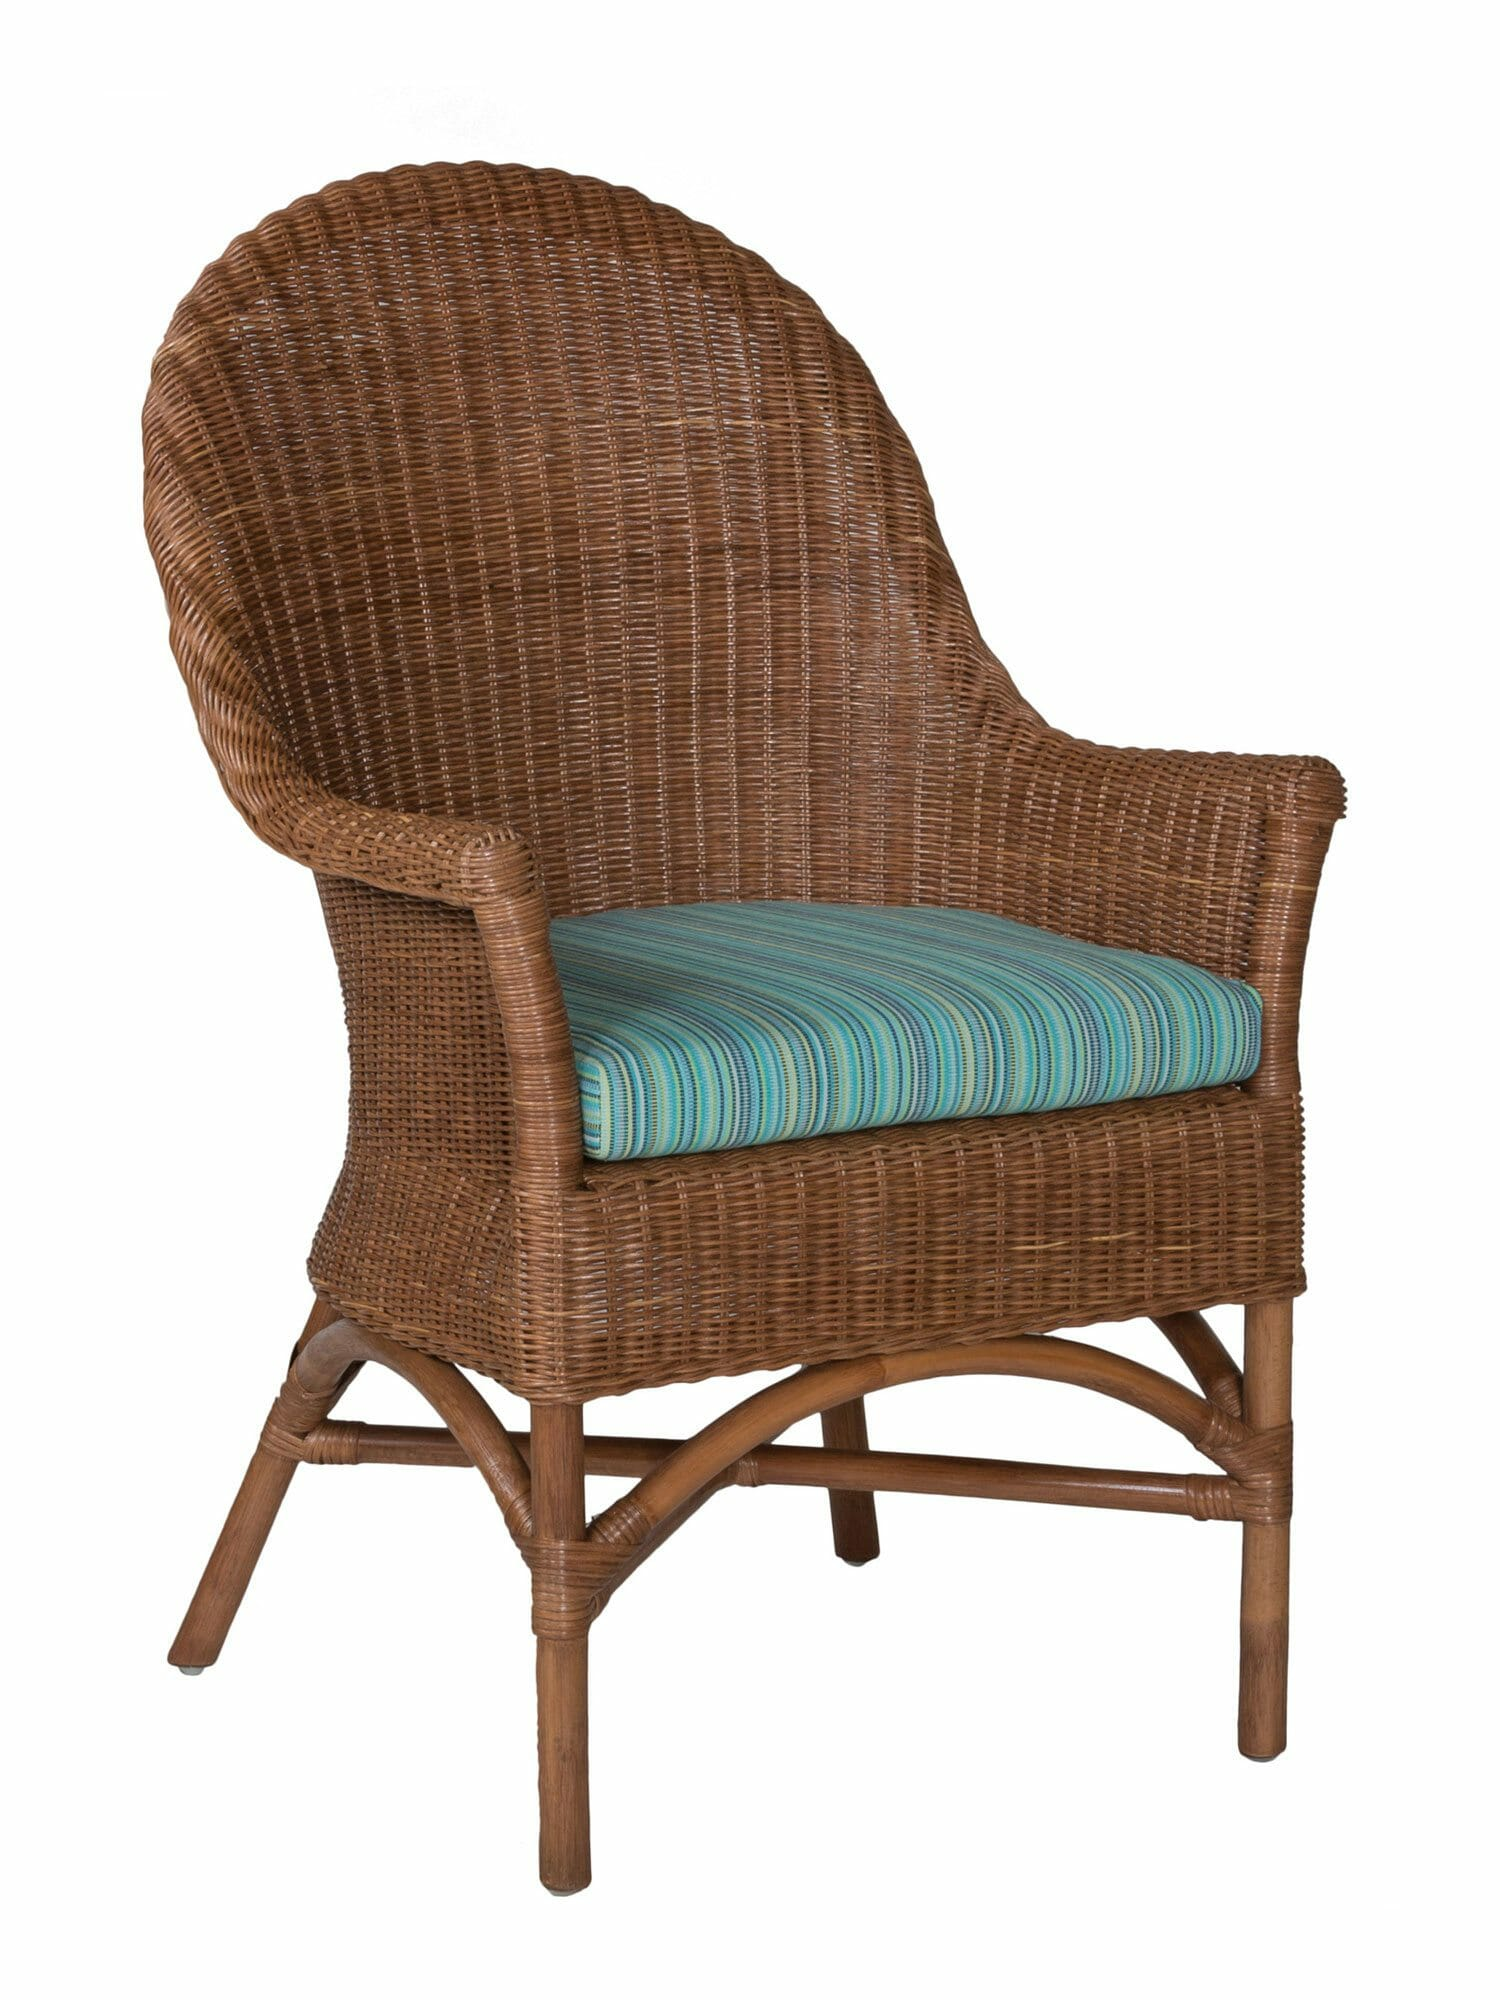 The chair is available in its original bent oak and natural seat as well as in other modern variations. West Palm Wicker Dining Arm Chair | Custom Furniture